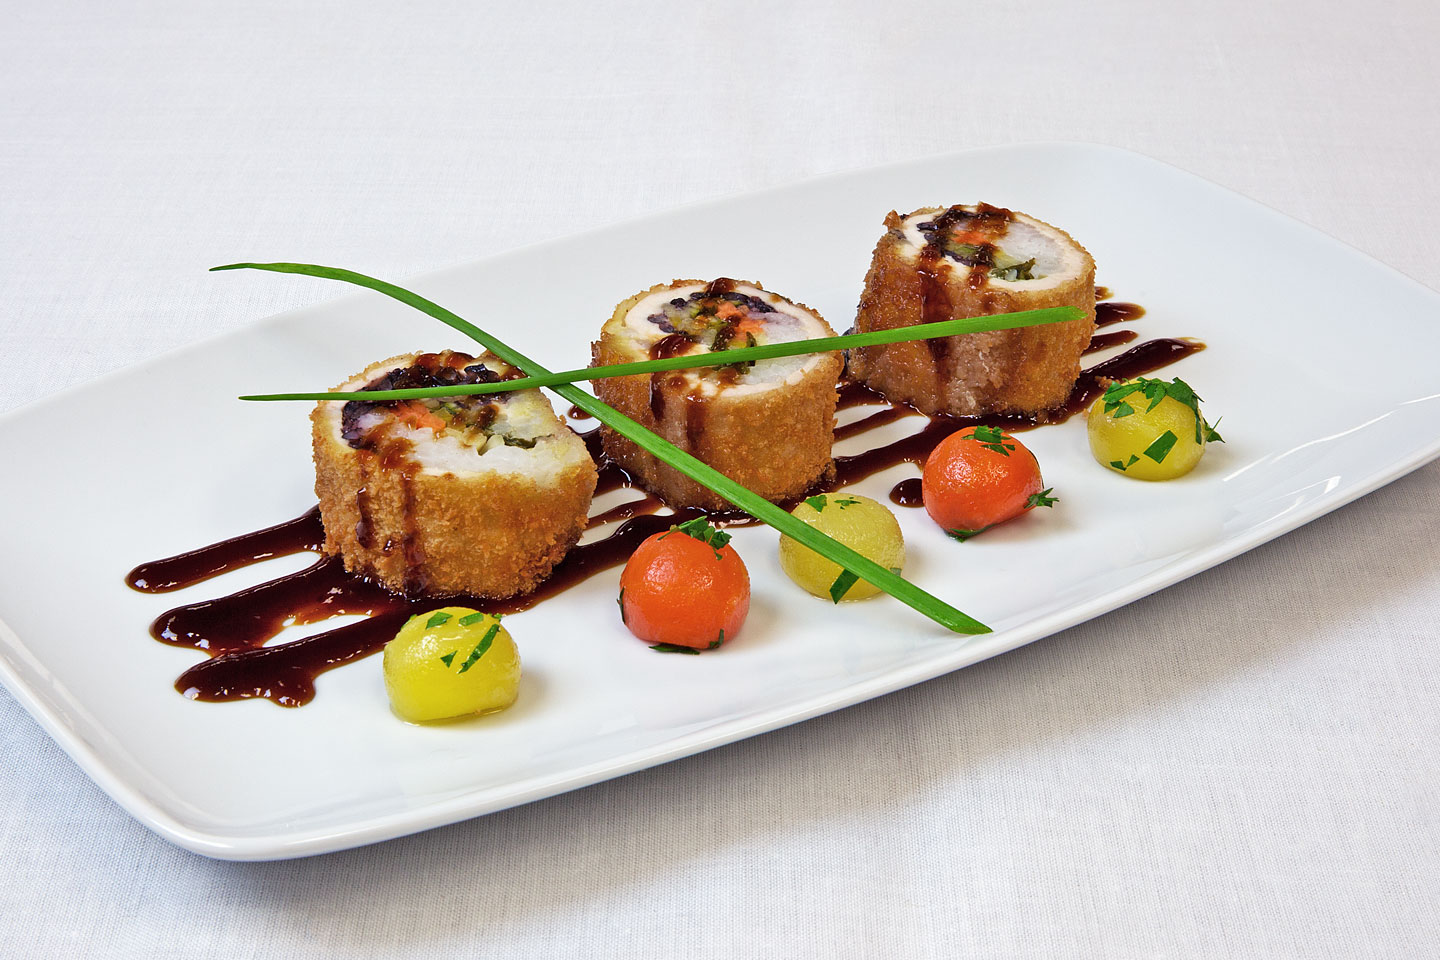 a delicious appetizer prepared by danziger kosher catering and served on a square oval porcelain plate